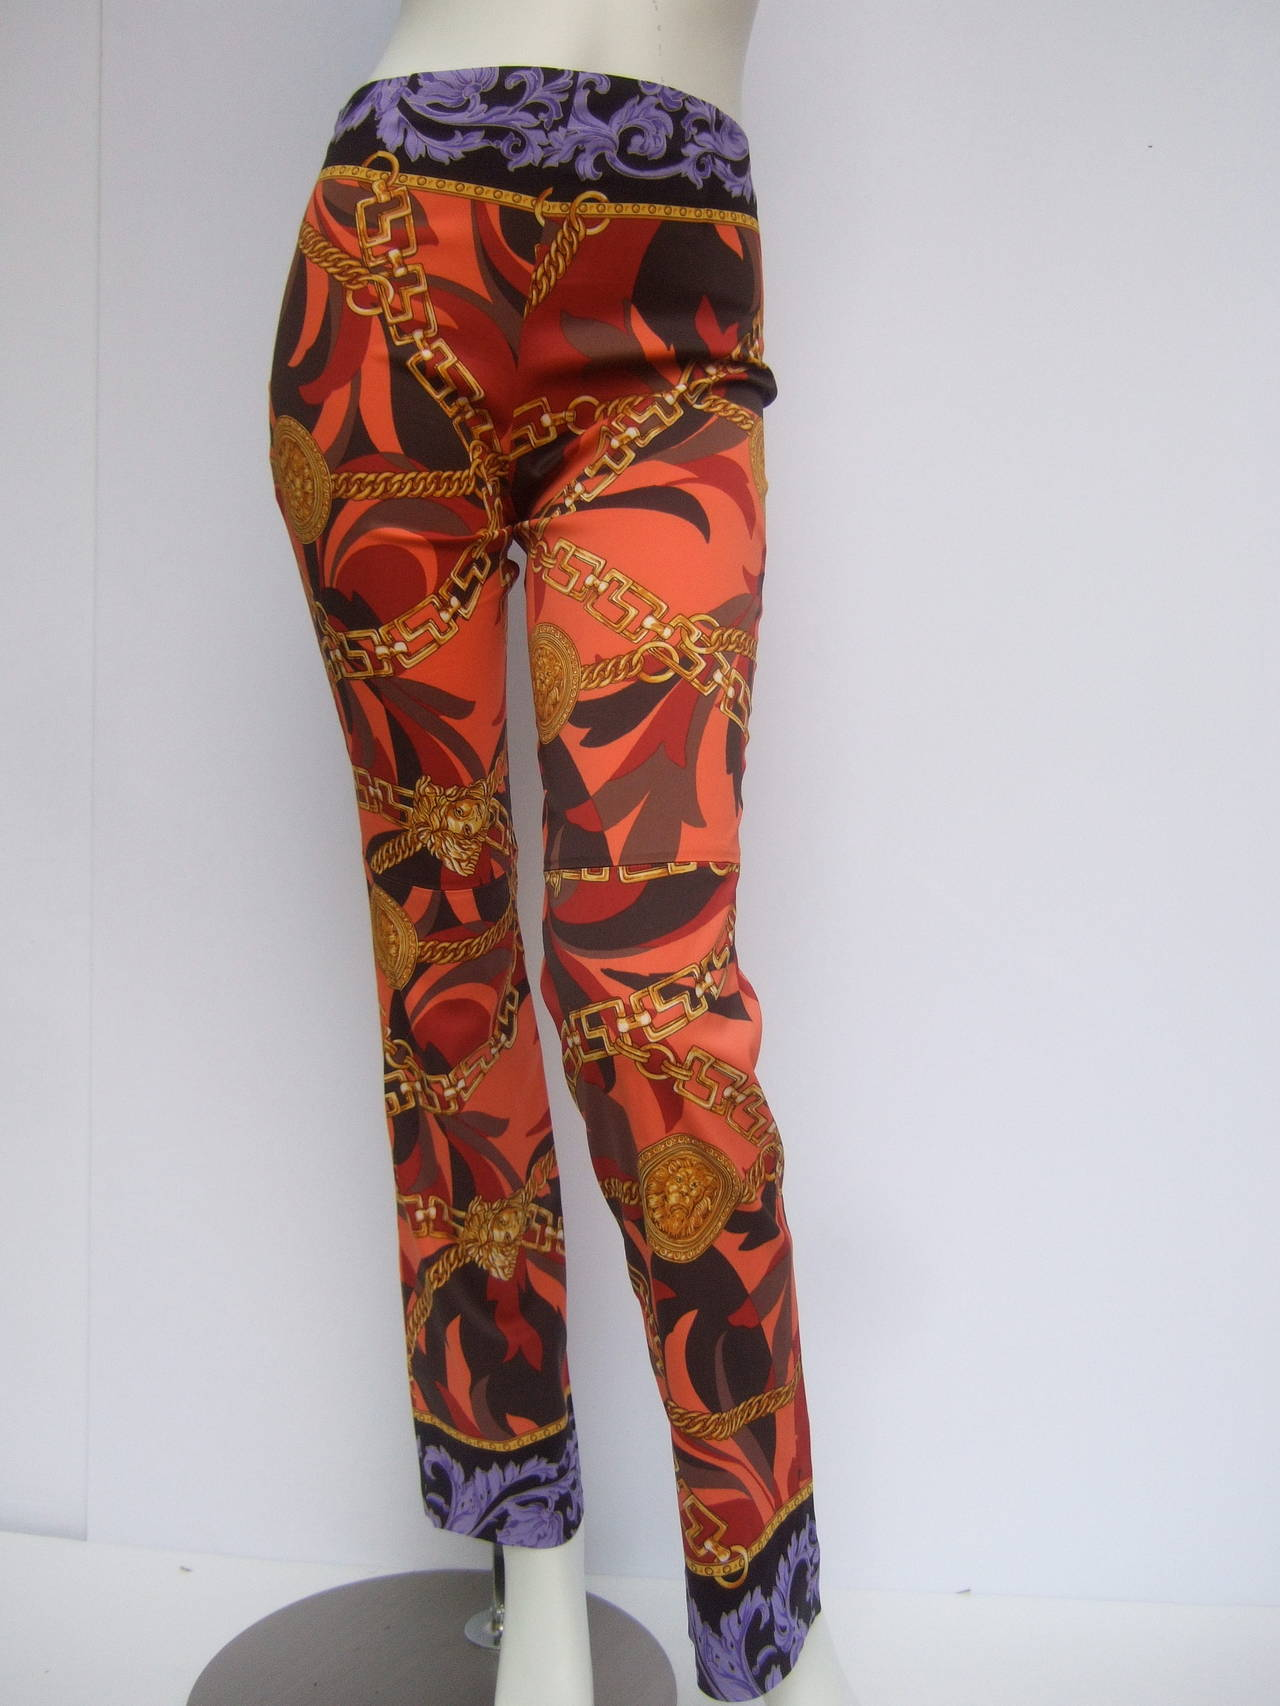 Versace Iconic Medusa Graphic Print Stretch Jeans Size 28 In New Never_worn Condition For Sale In Santa Barbara, CA